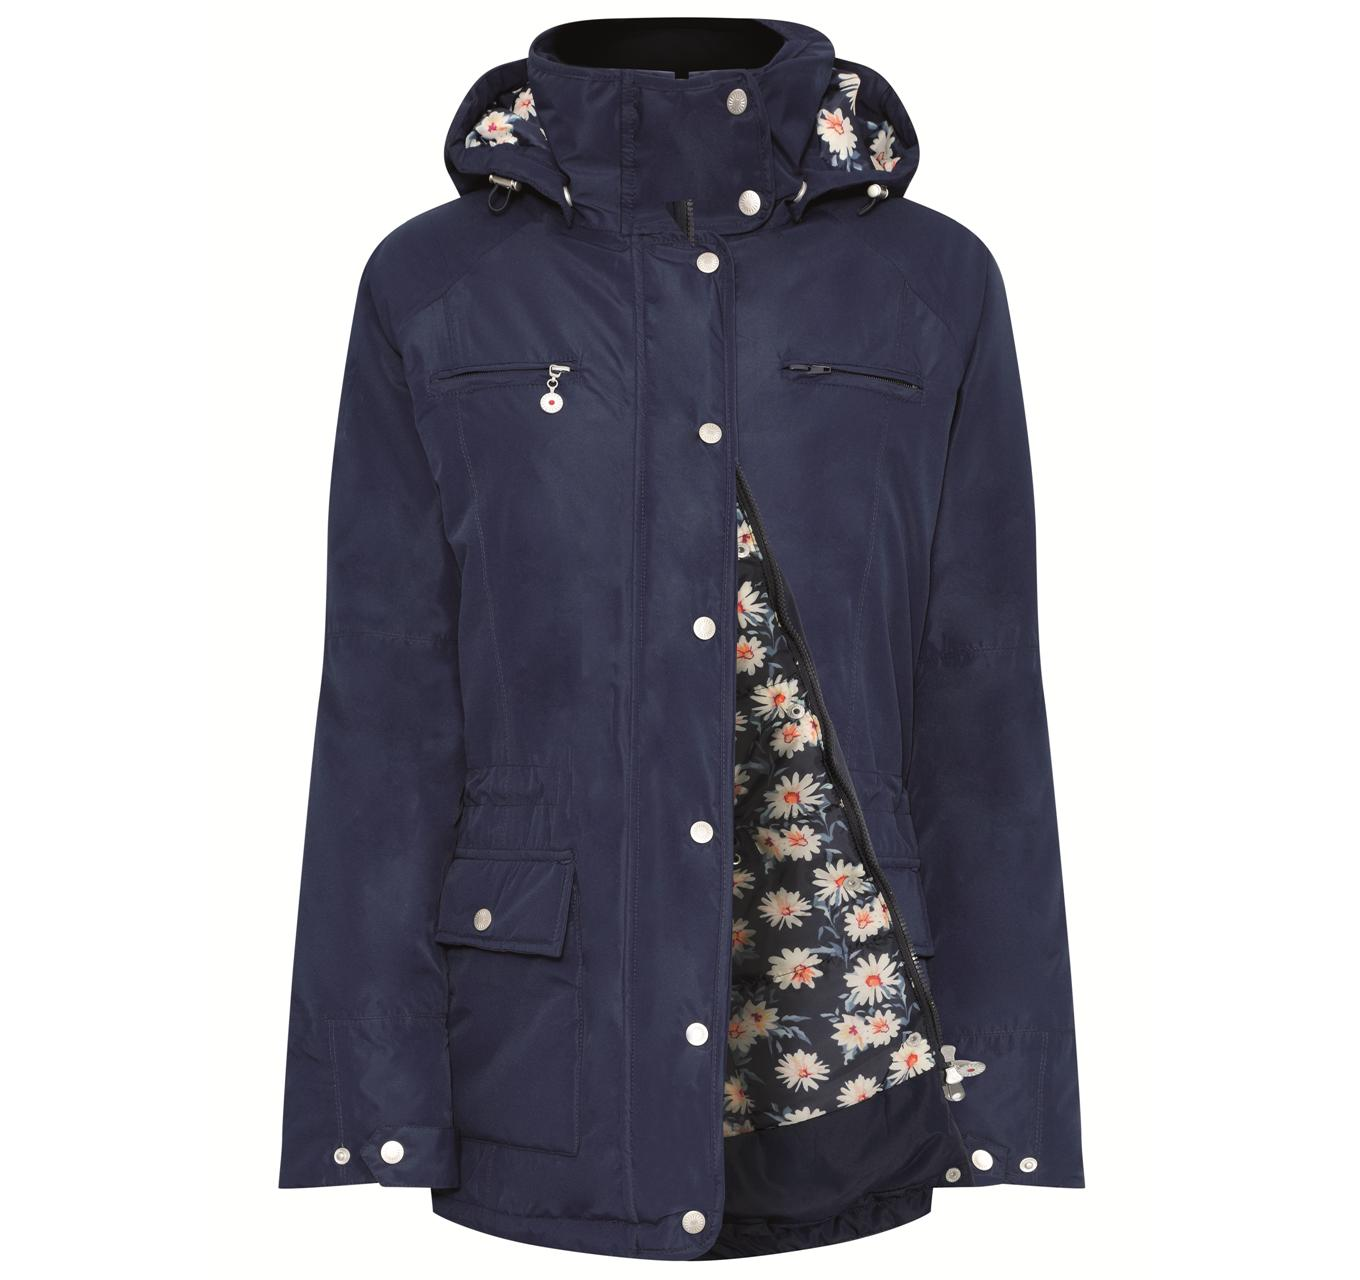 Mayfield Coat Navy 12